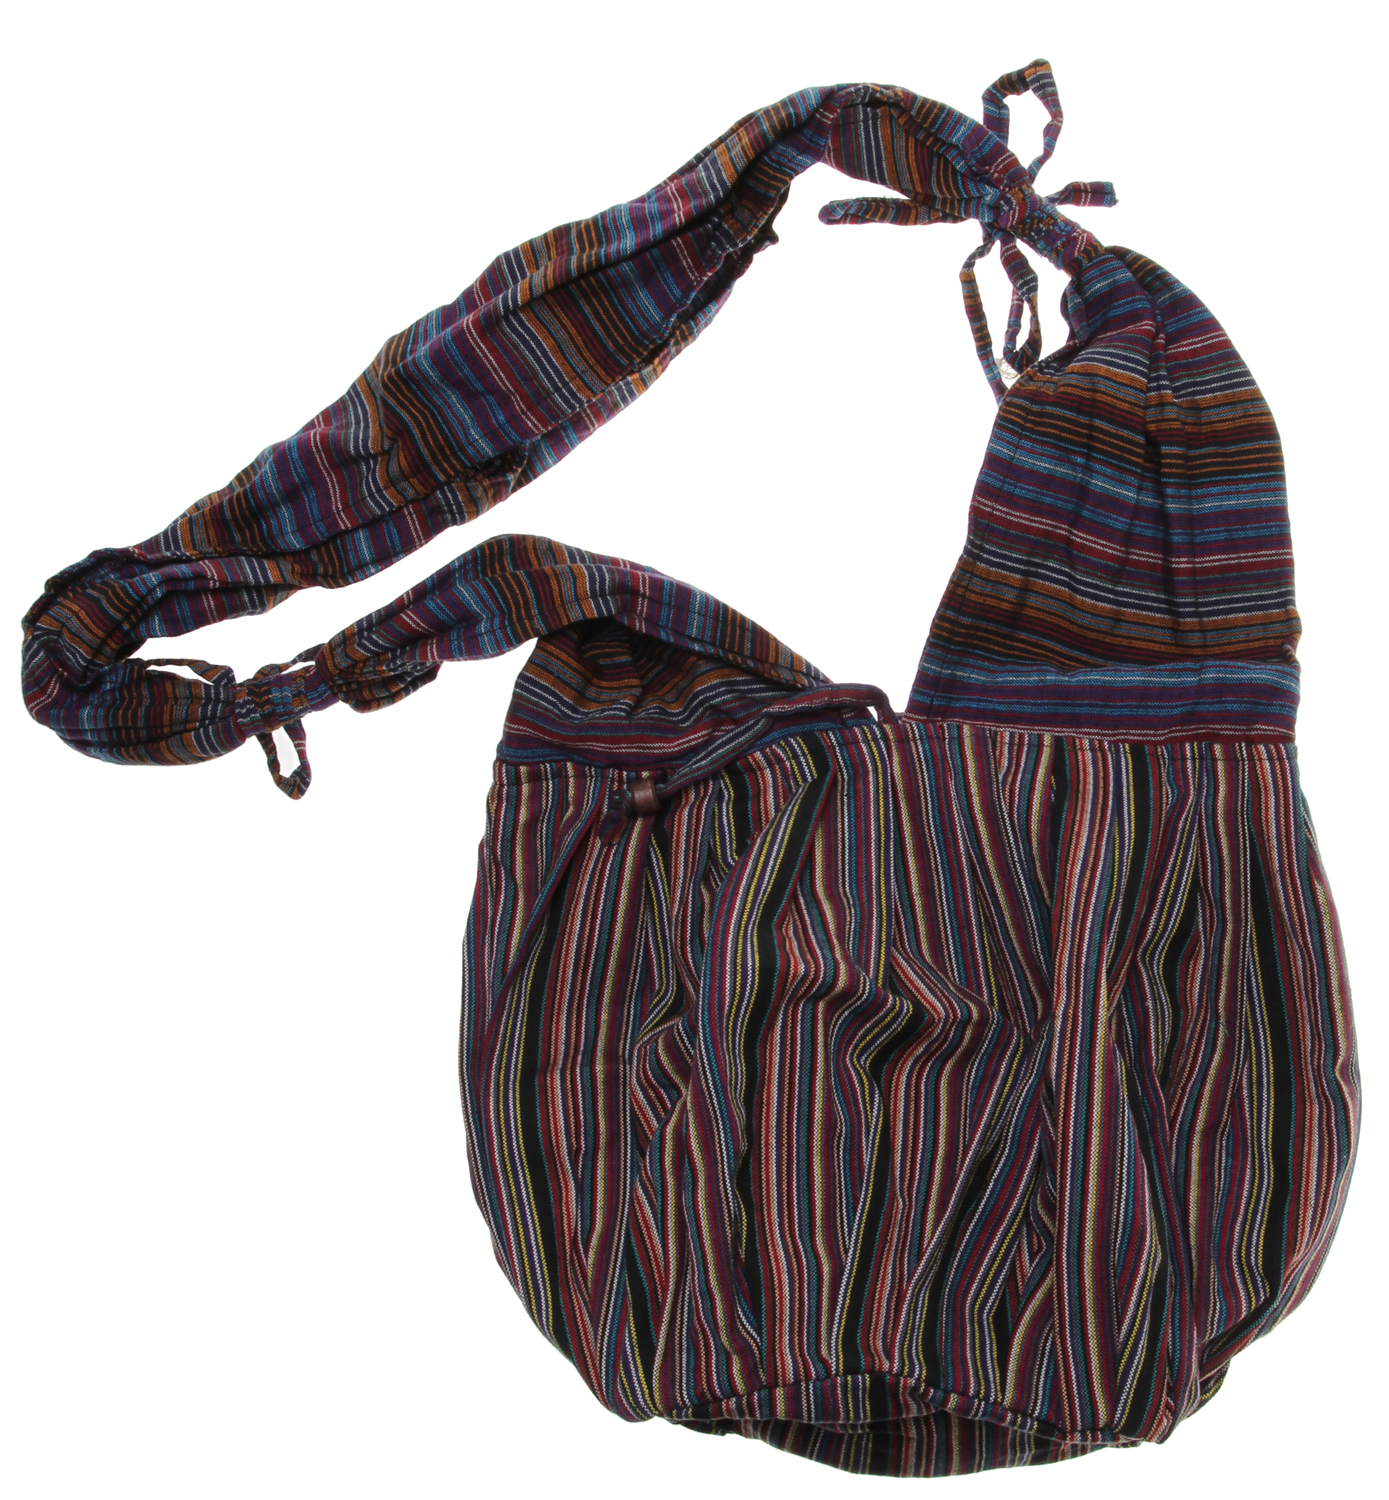 Entertainment Key Features of the Prana Meme Satchel: 100% cotton Cross body styling Vertical stripe woven pattern Tie detailing - $31.95